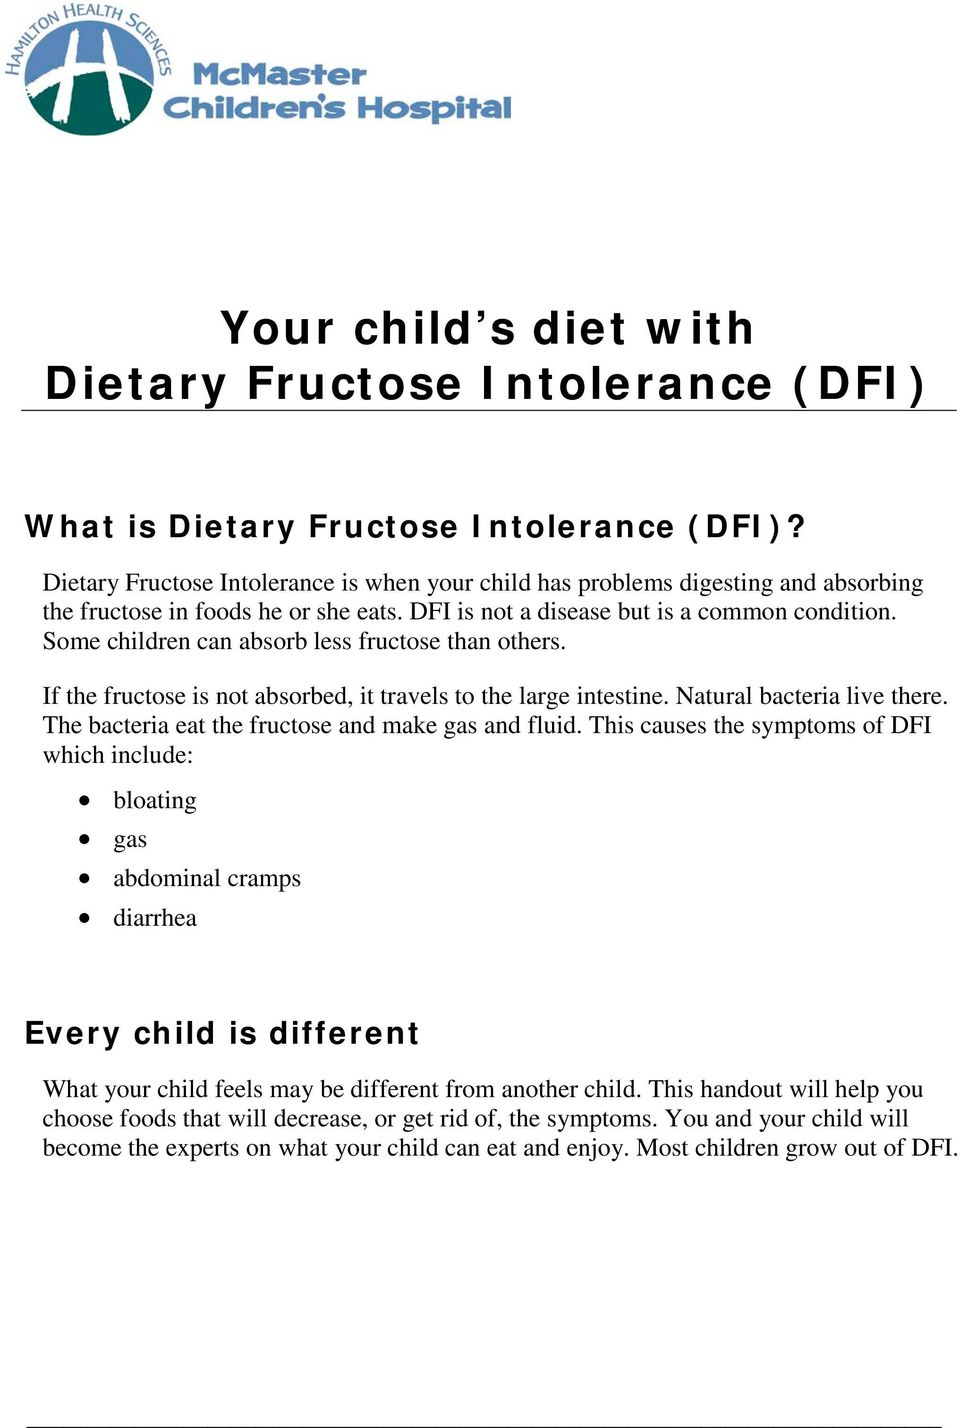 Some children can absorb less fructose than others. If the fructose is not absorbed, it travels to the large intestine. Natural bacteria live there.